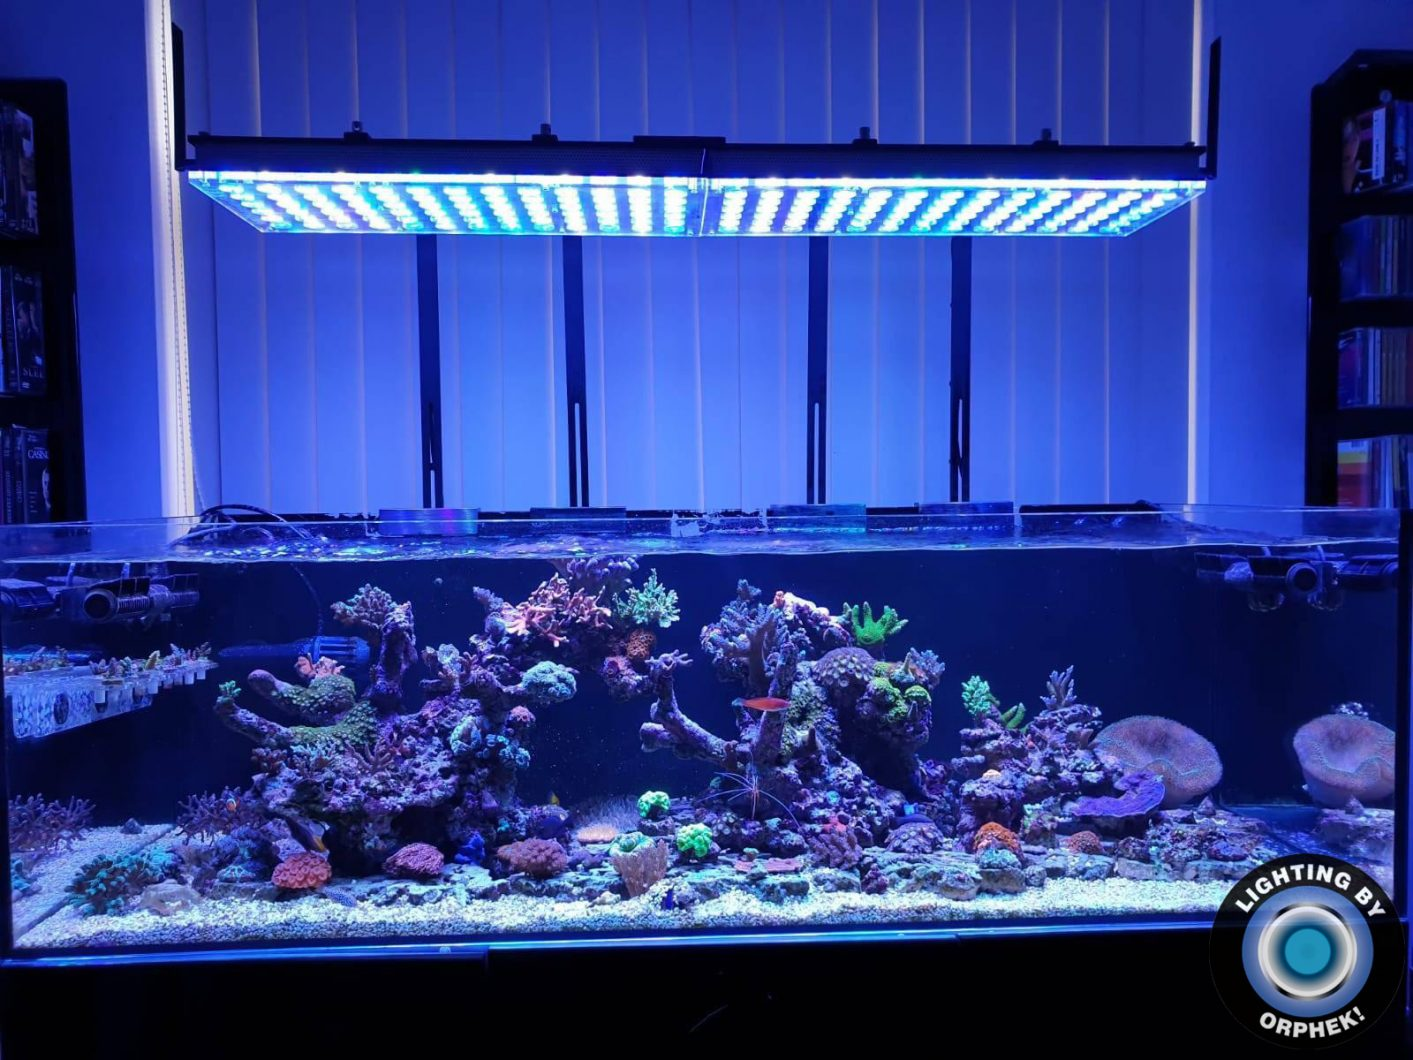 2020 atlantik v4 LED aquarium marine reef tank